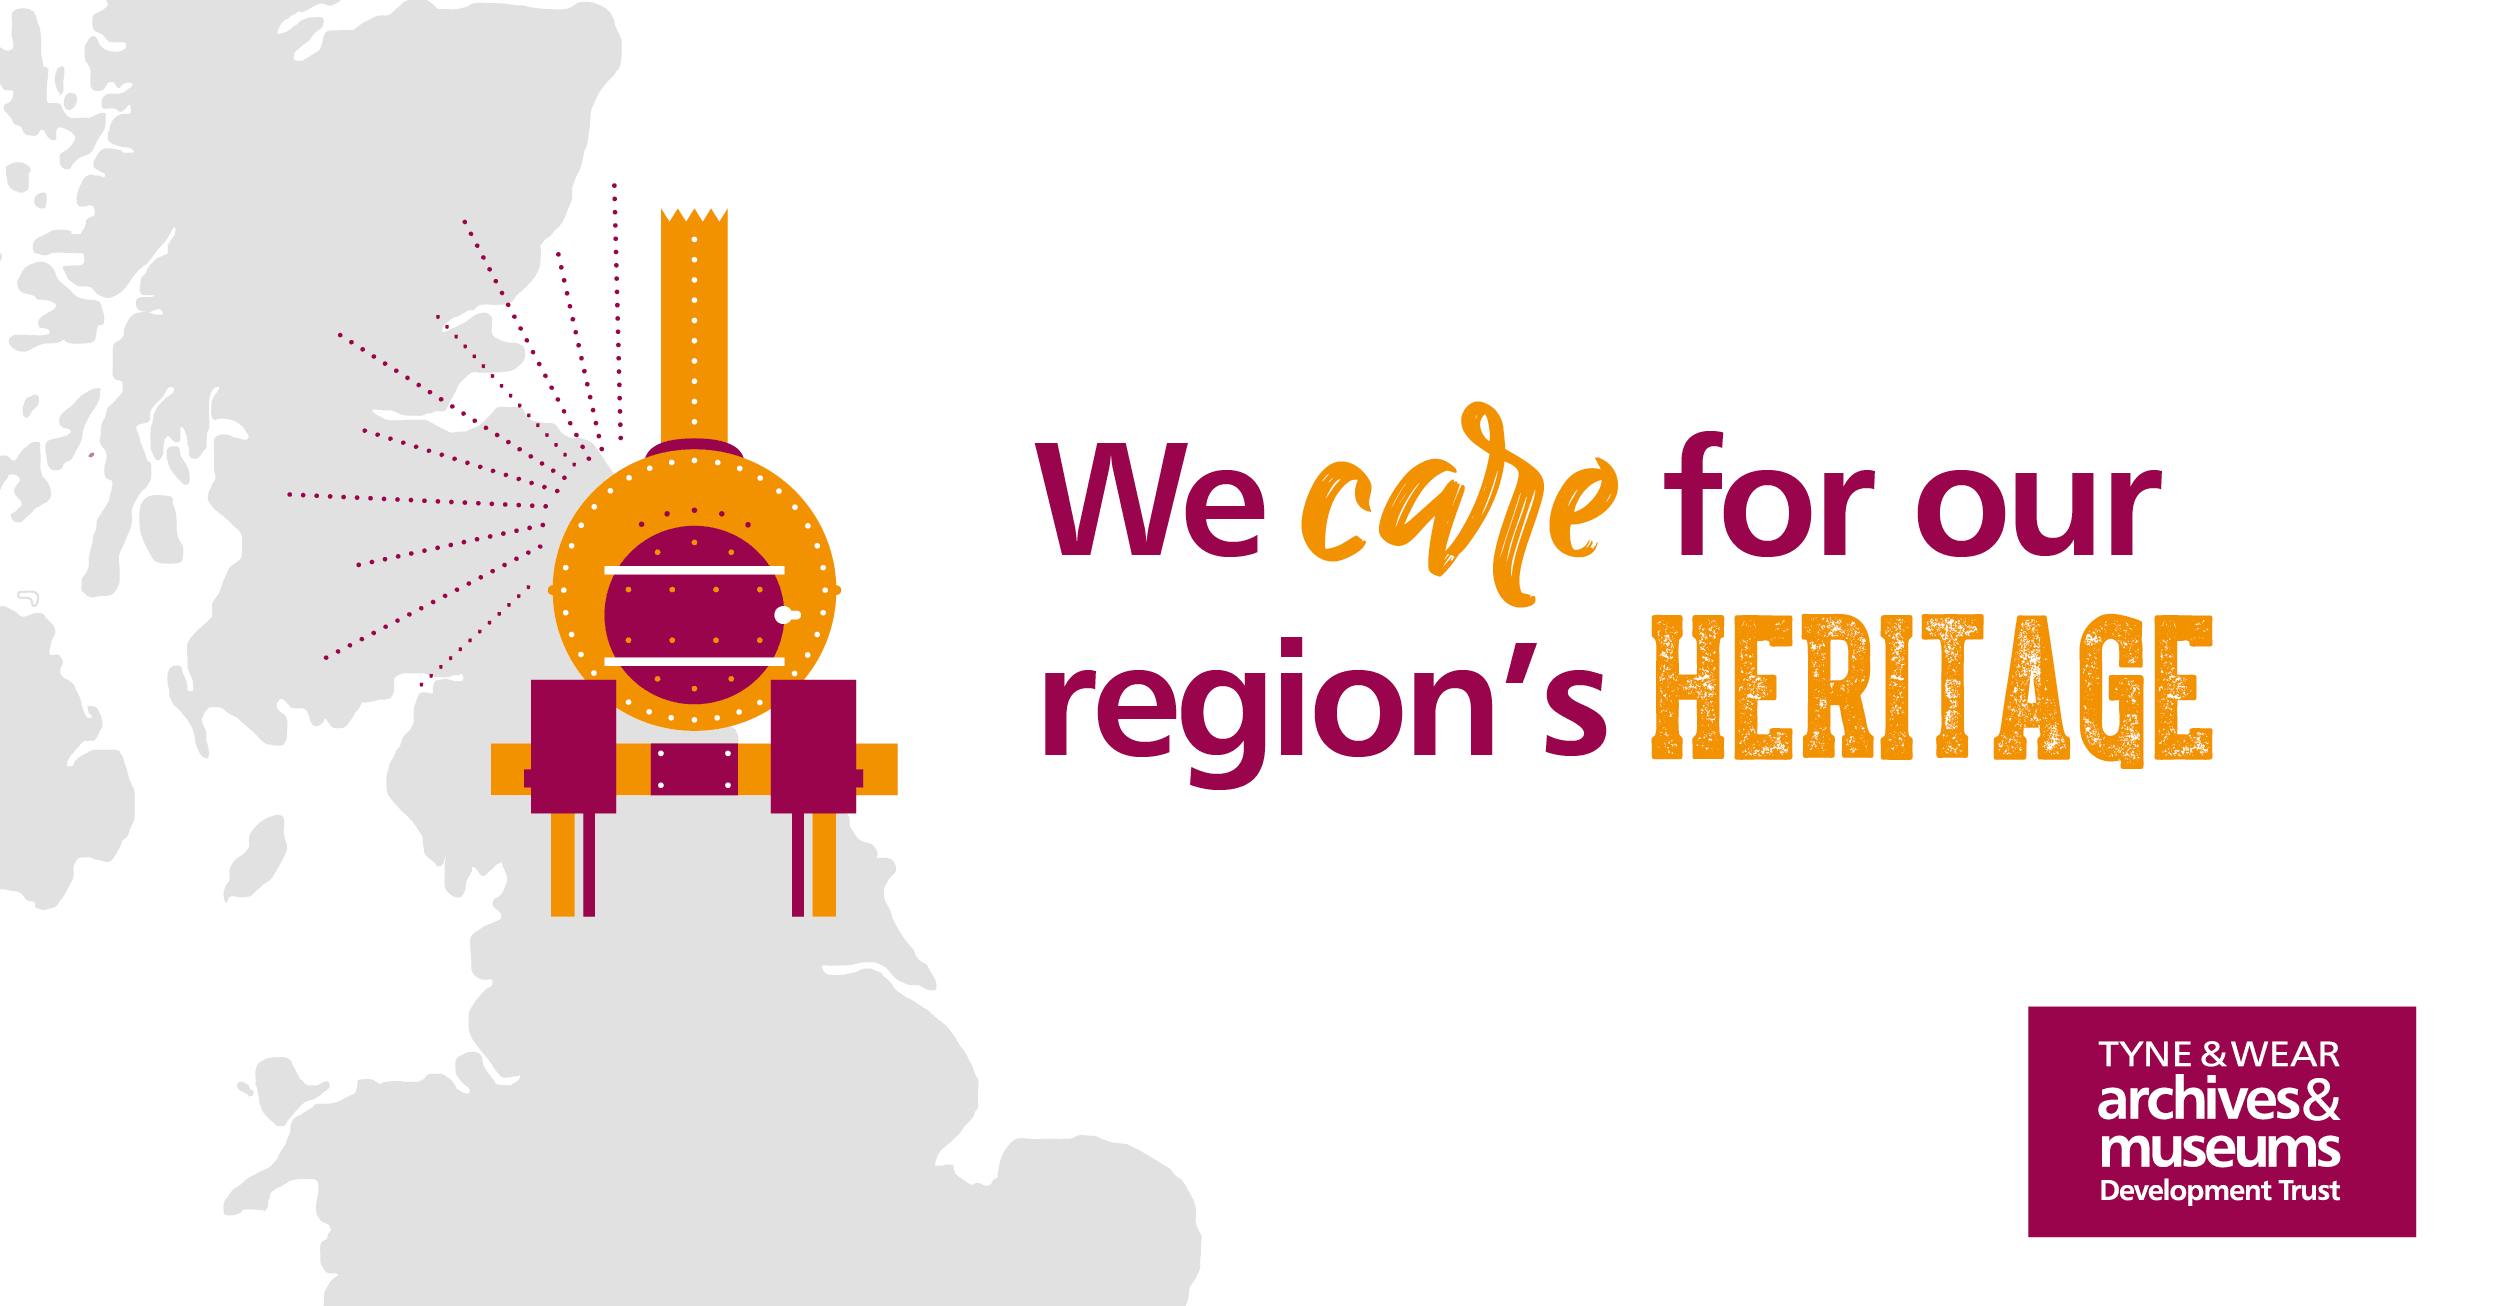 We care for our region's heritage